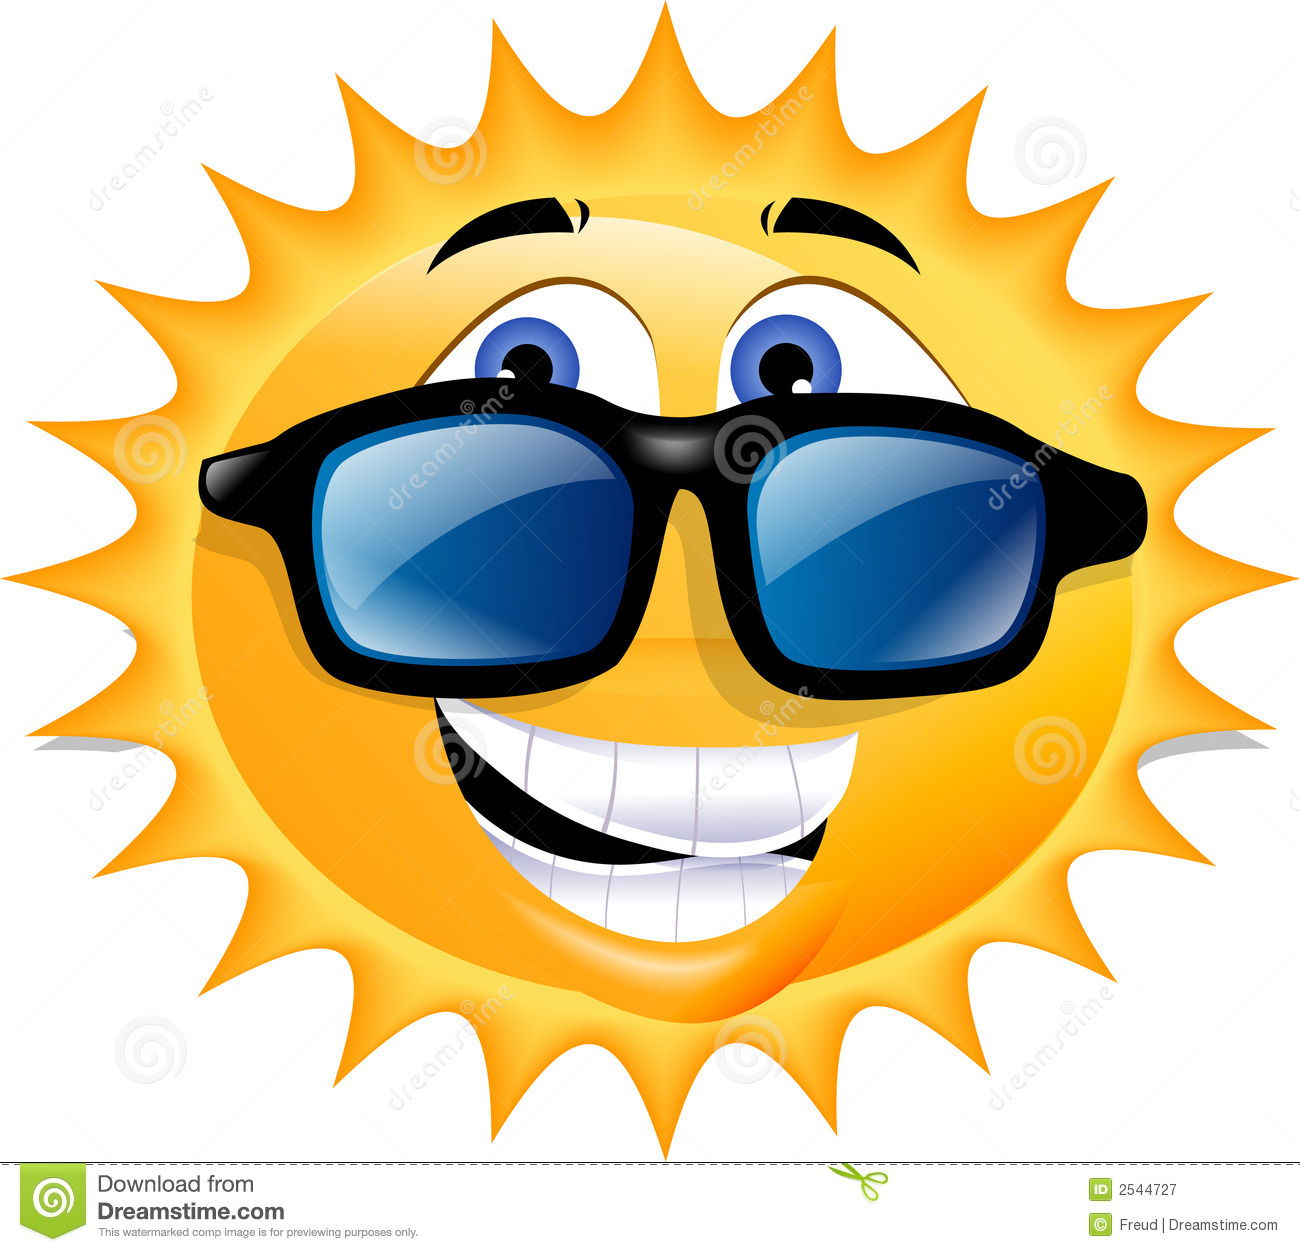 Sun with sunglasses clipart